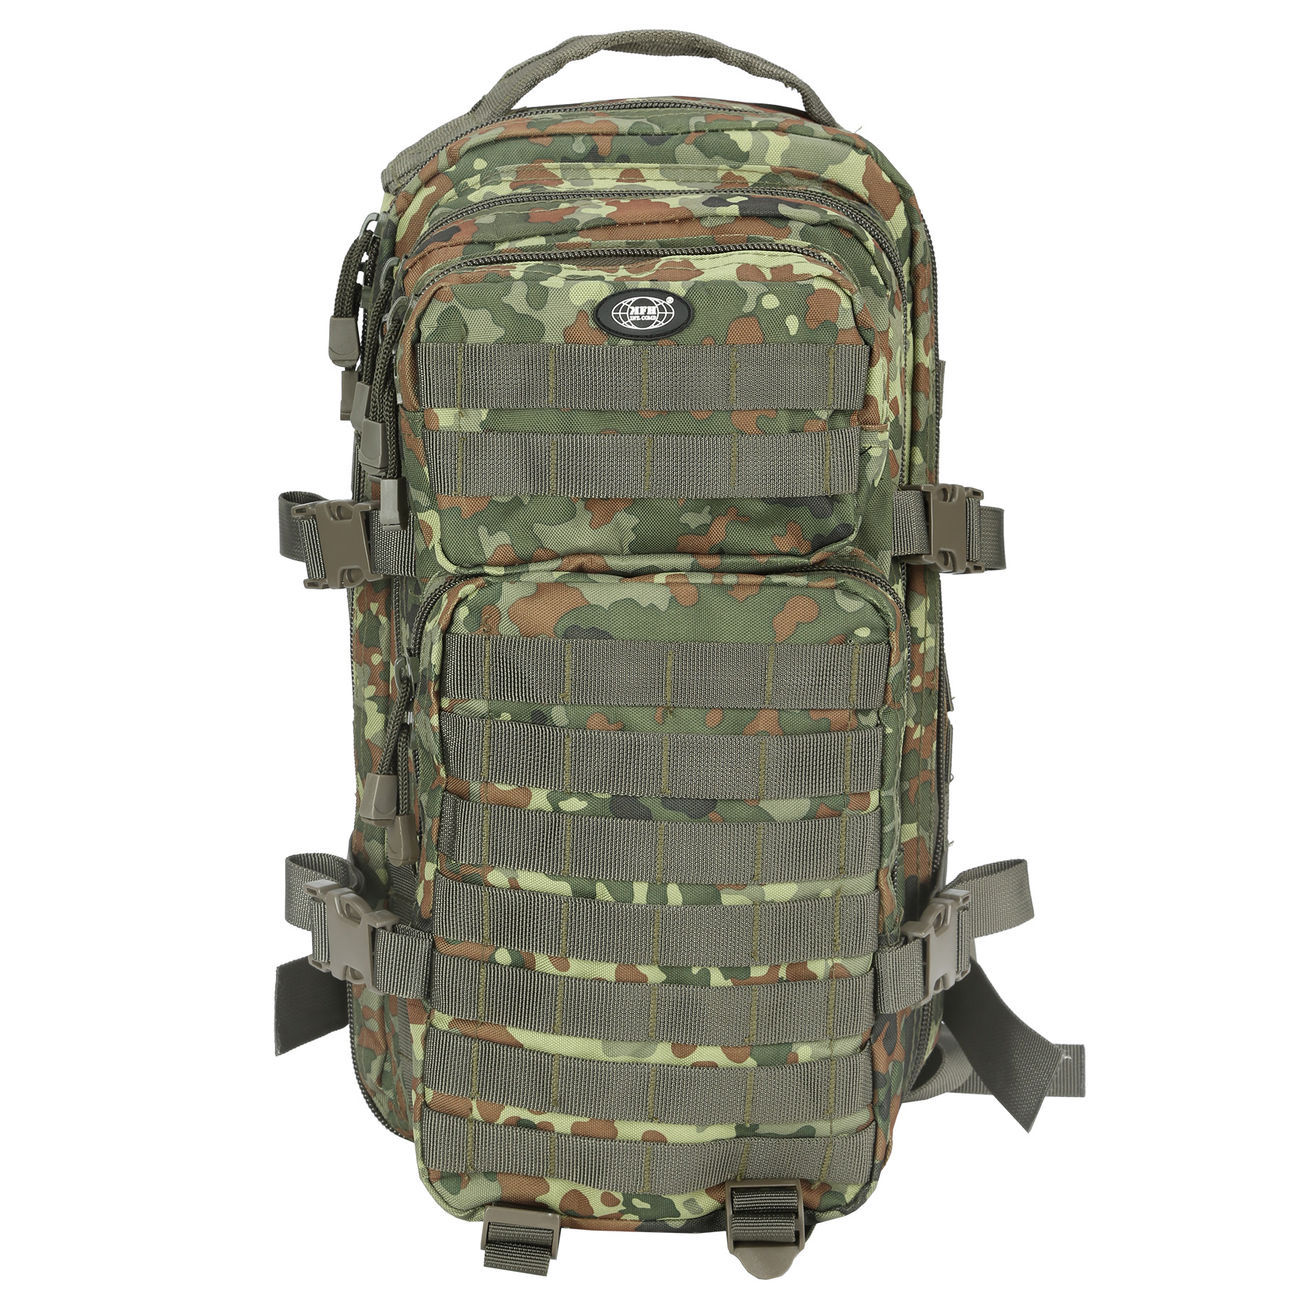 MFH Rucksack US Assault flecktarn 6